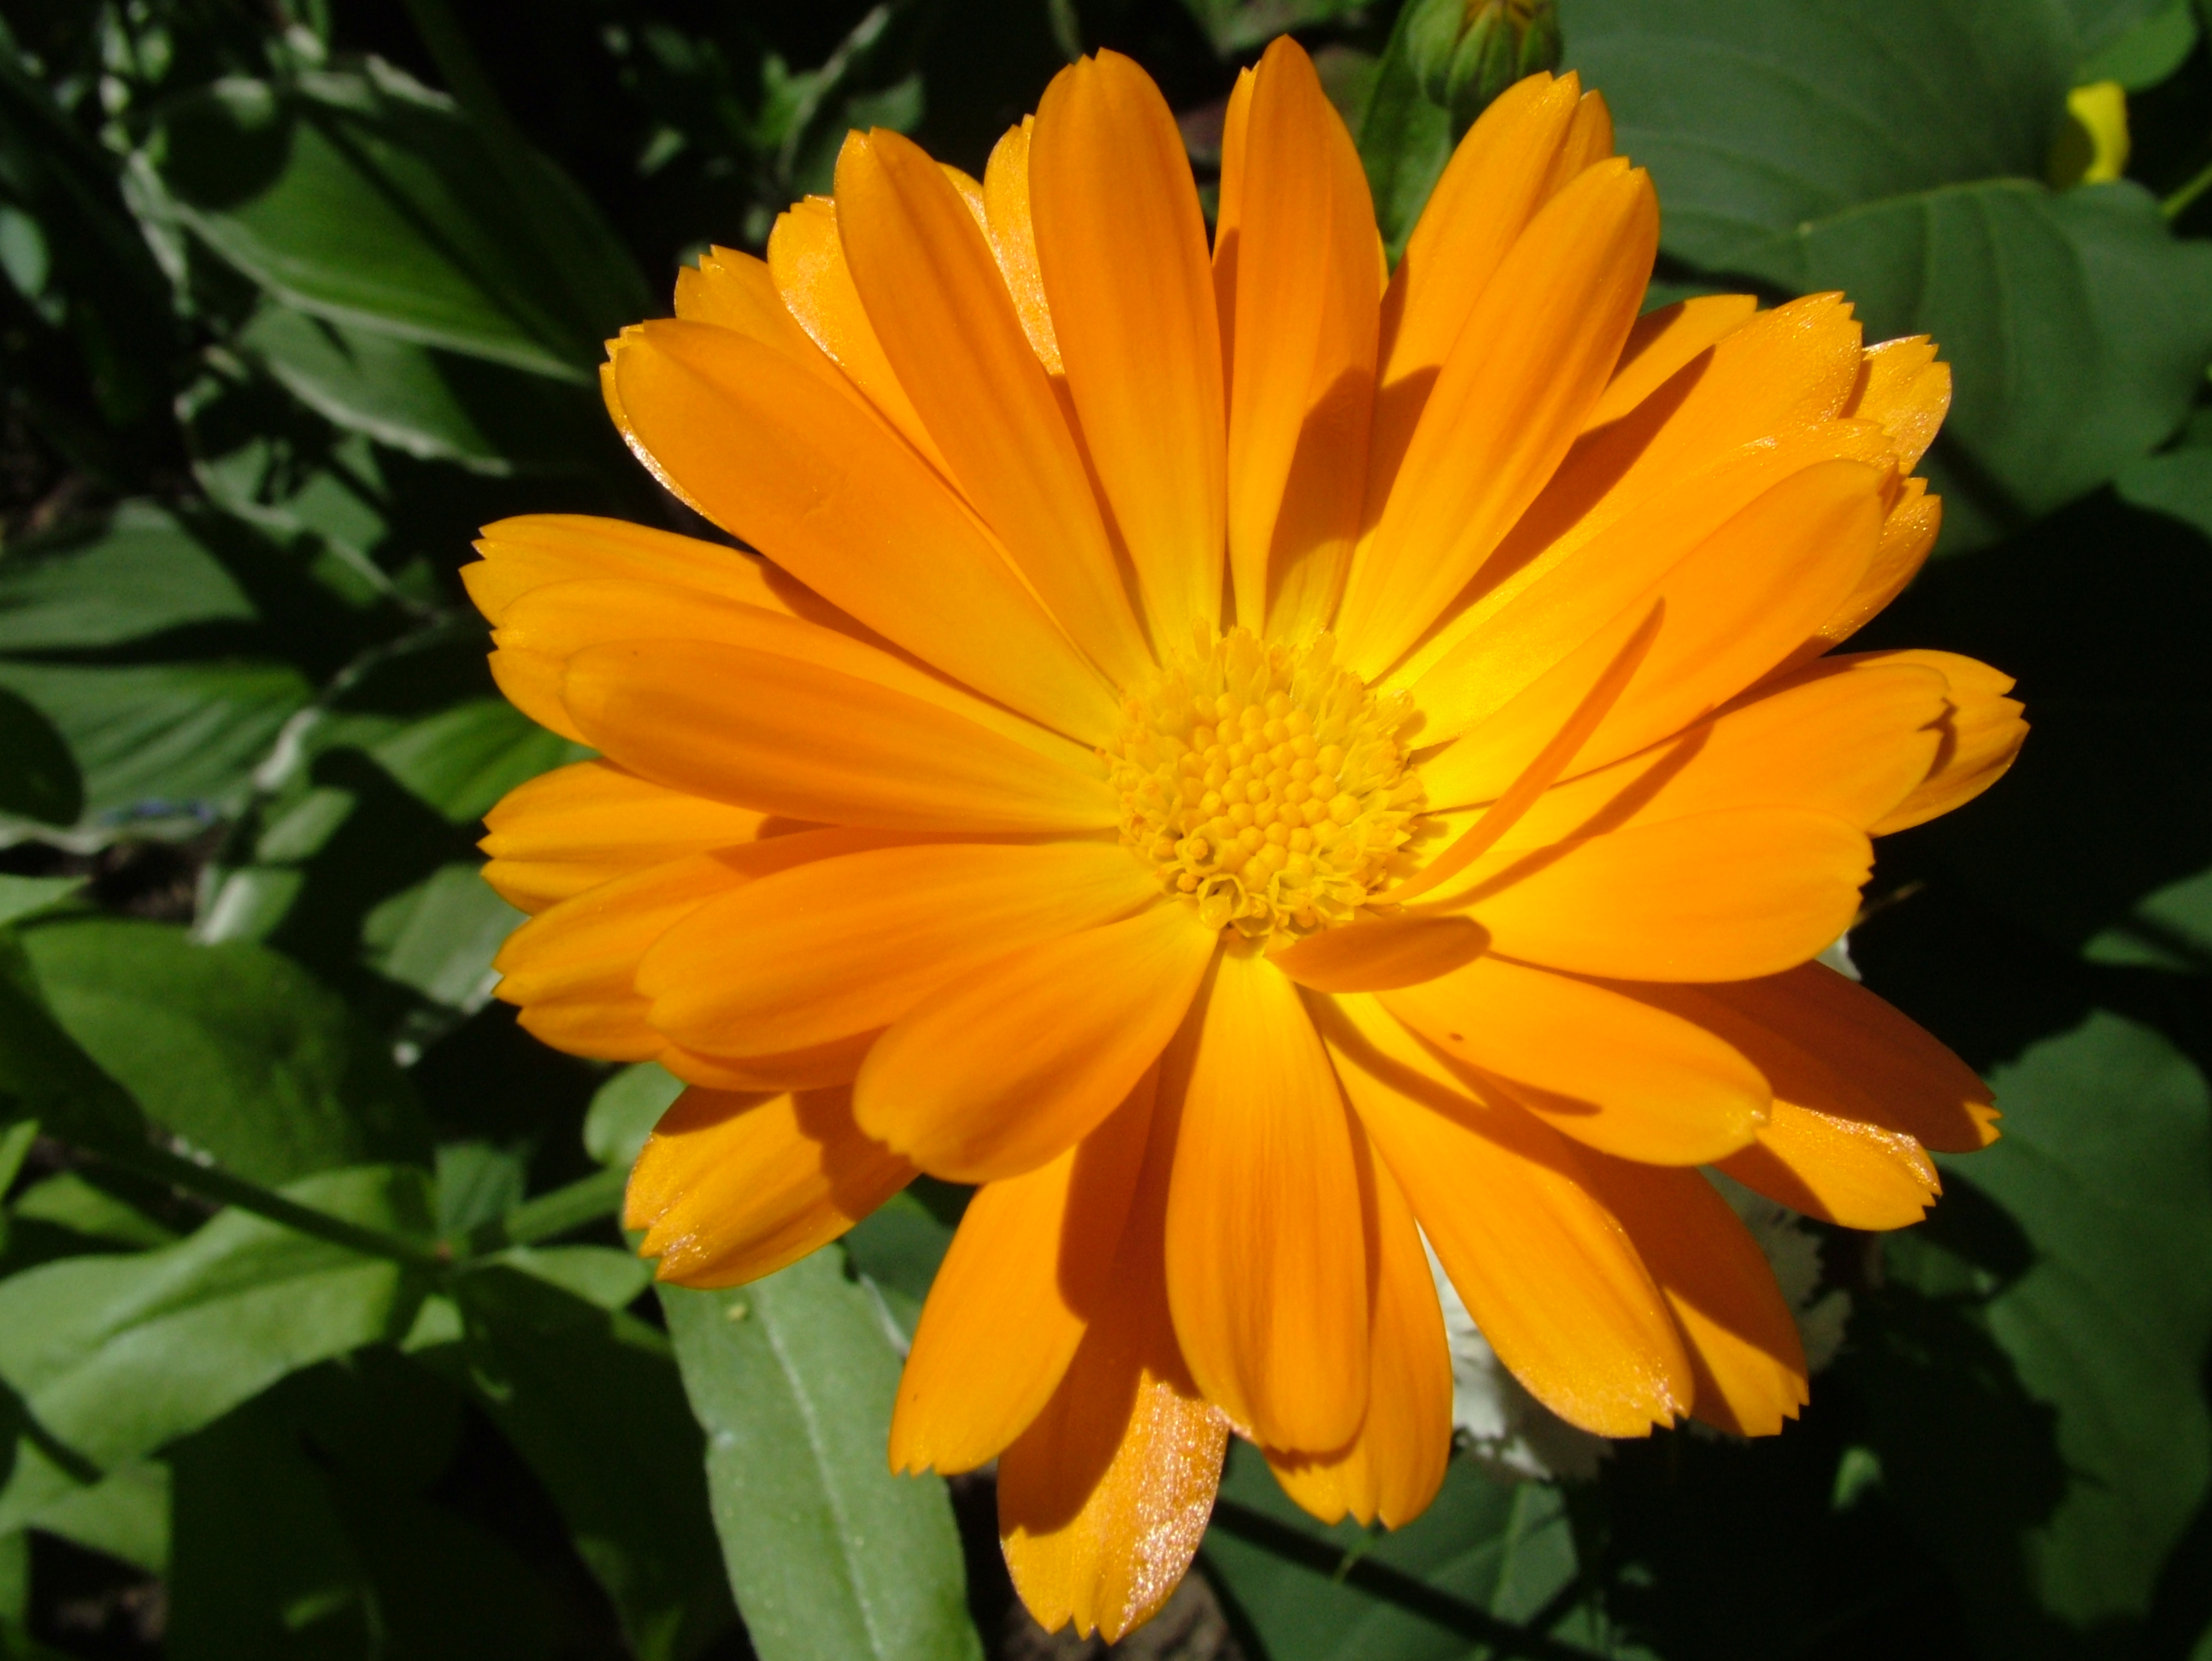 This Image To Download Full Resolution Sunny Orange Flower Photo 4048x3040